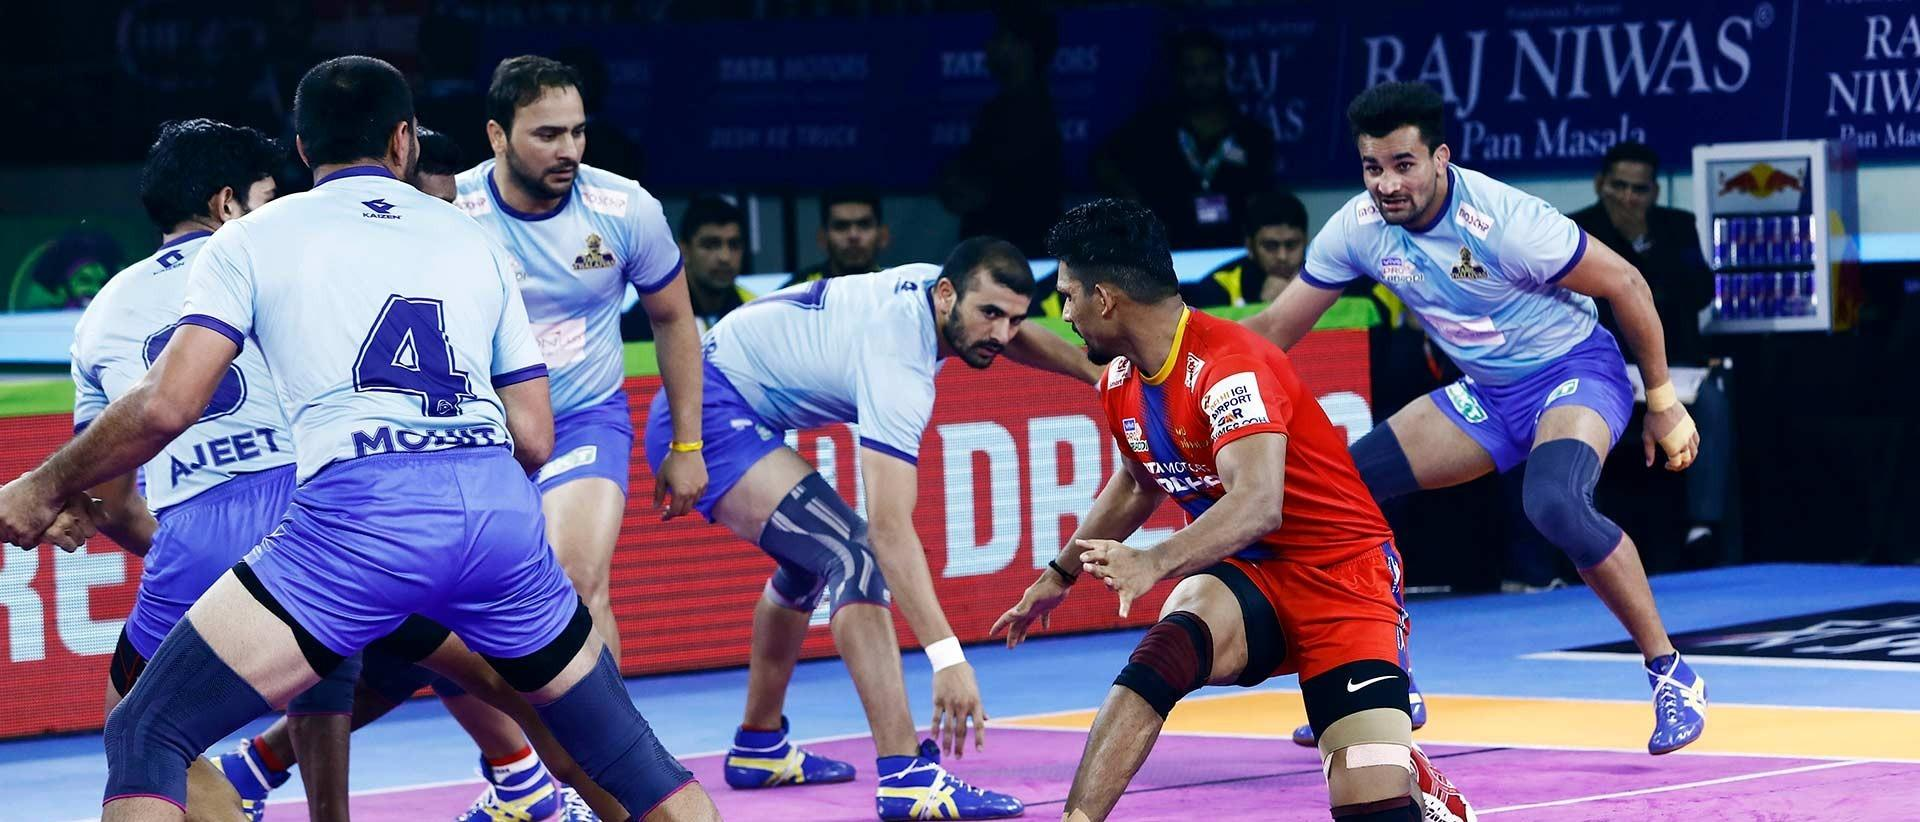 U.P. Yoddha's neck-and-neck fight with Thalaivas ends with a tie